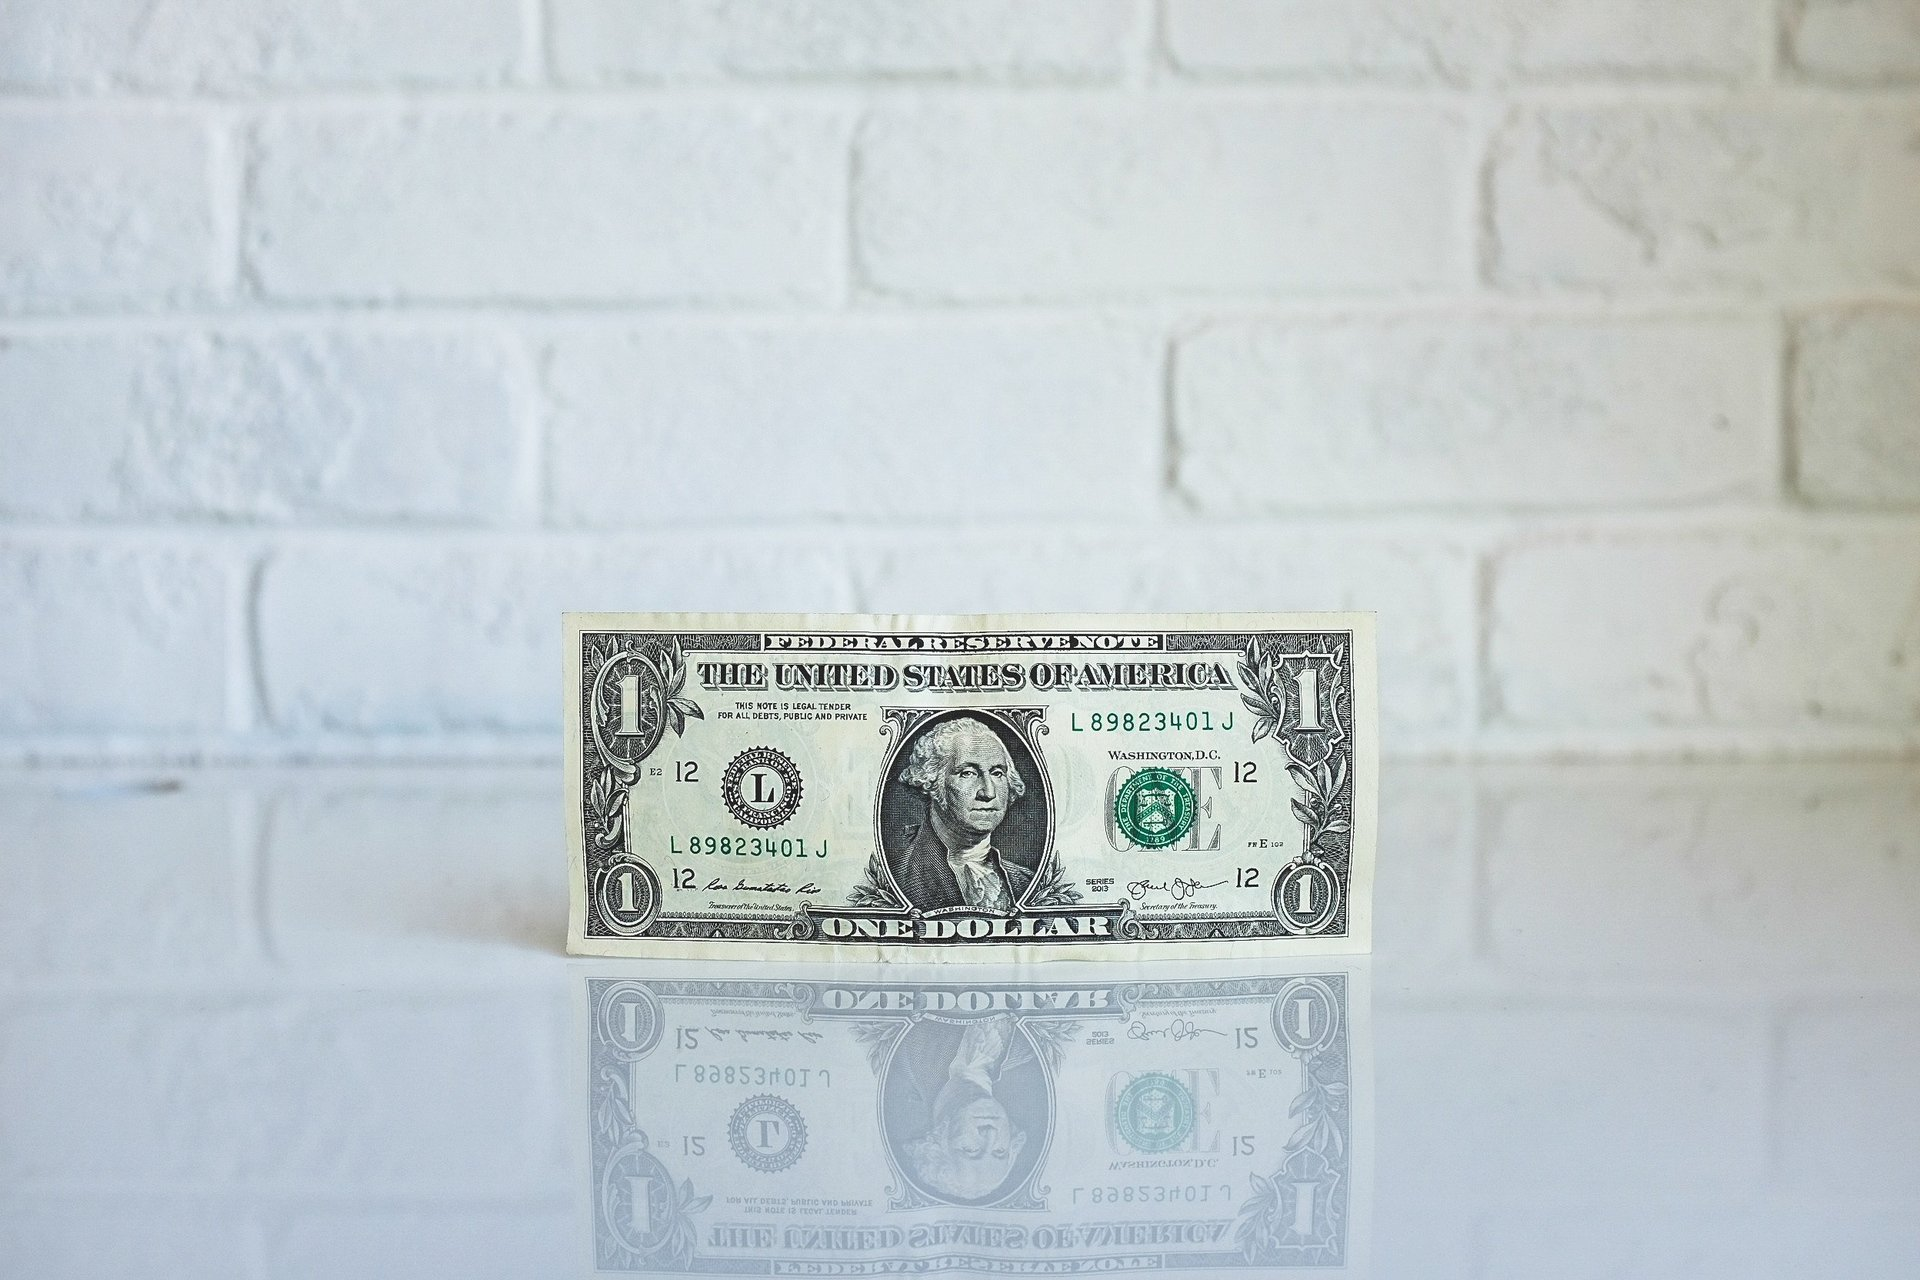 dollar bill with Washington's face imprinted on it